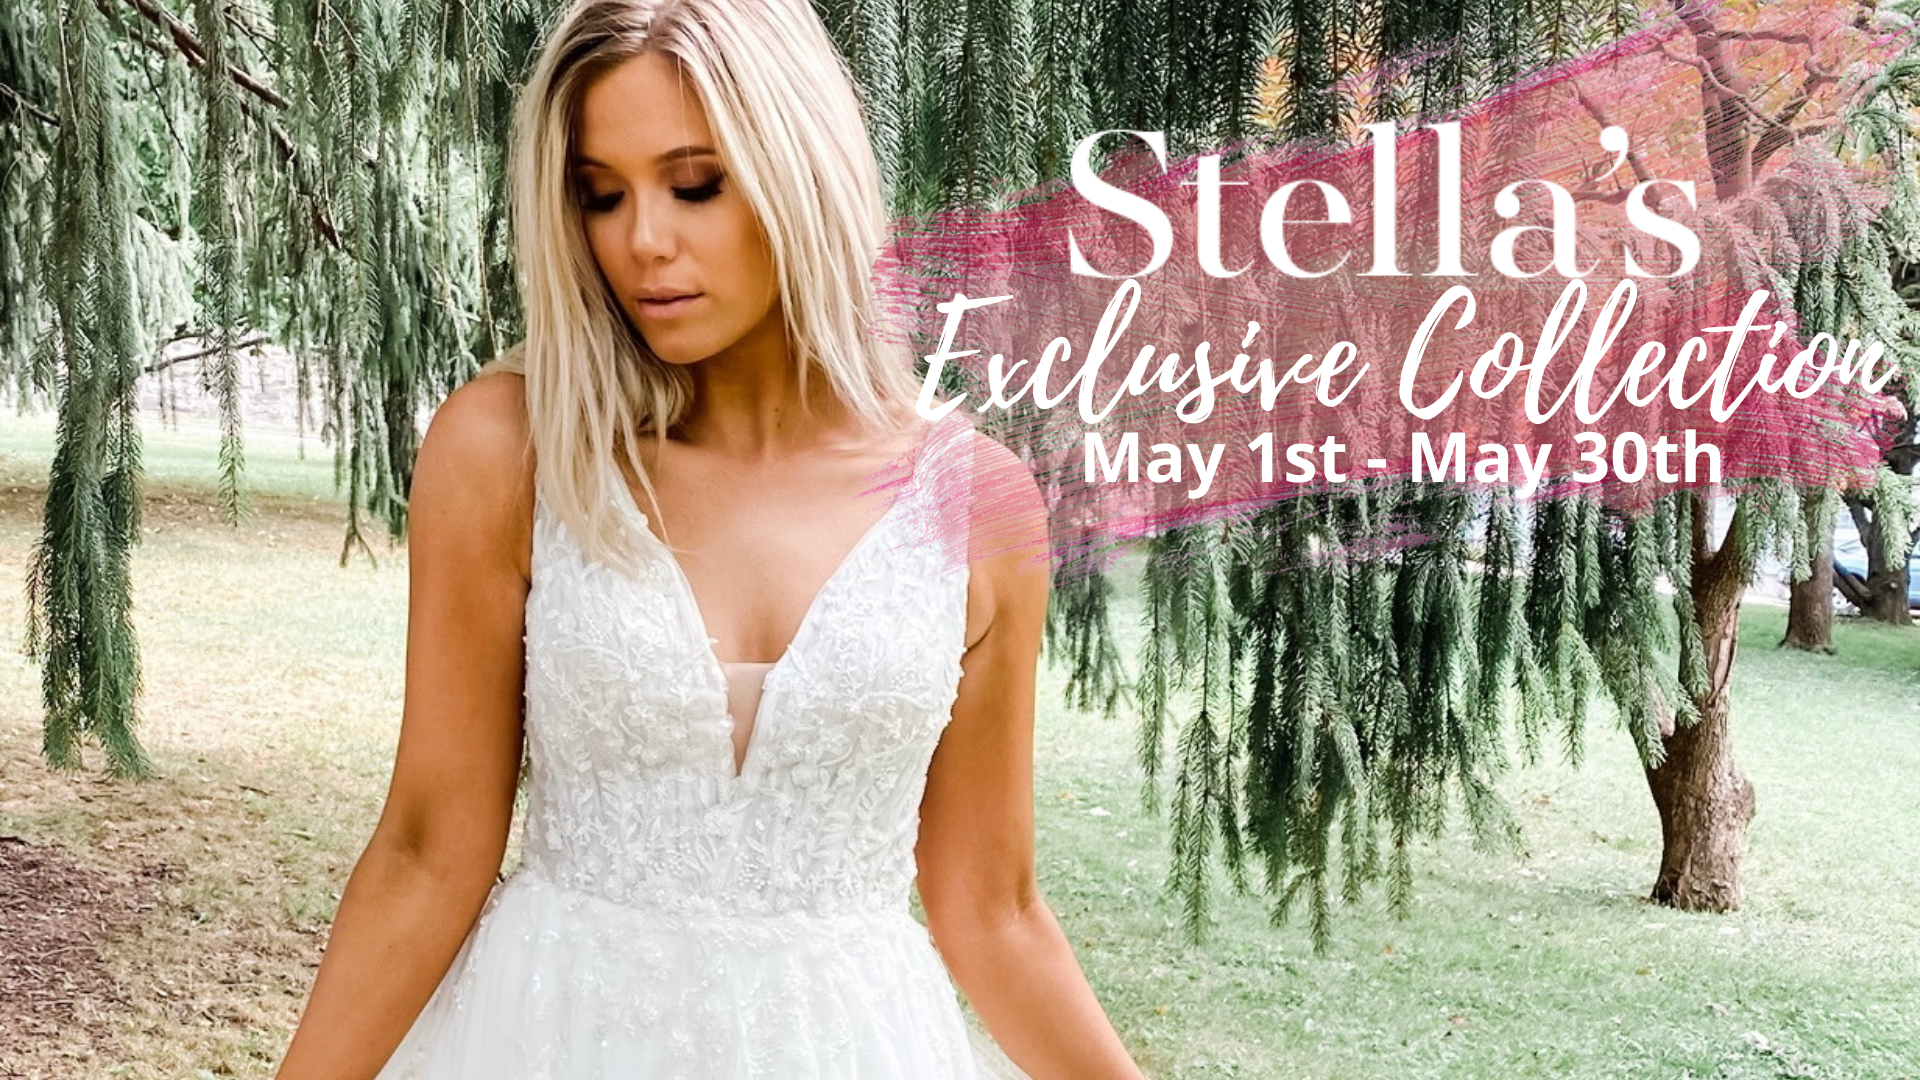 Stella's Exclusive Collection event May 1st- May 30th! Get $100 off your dress and a gift from Stella's!